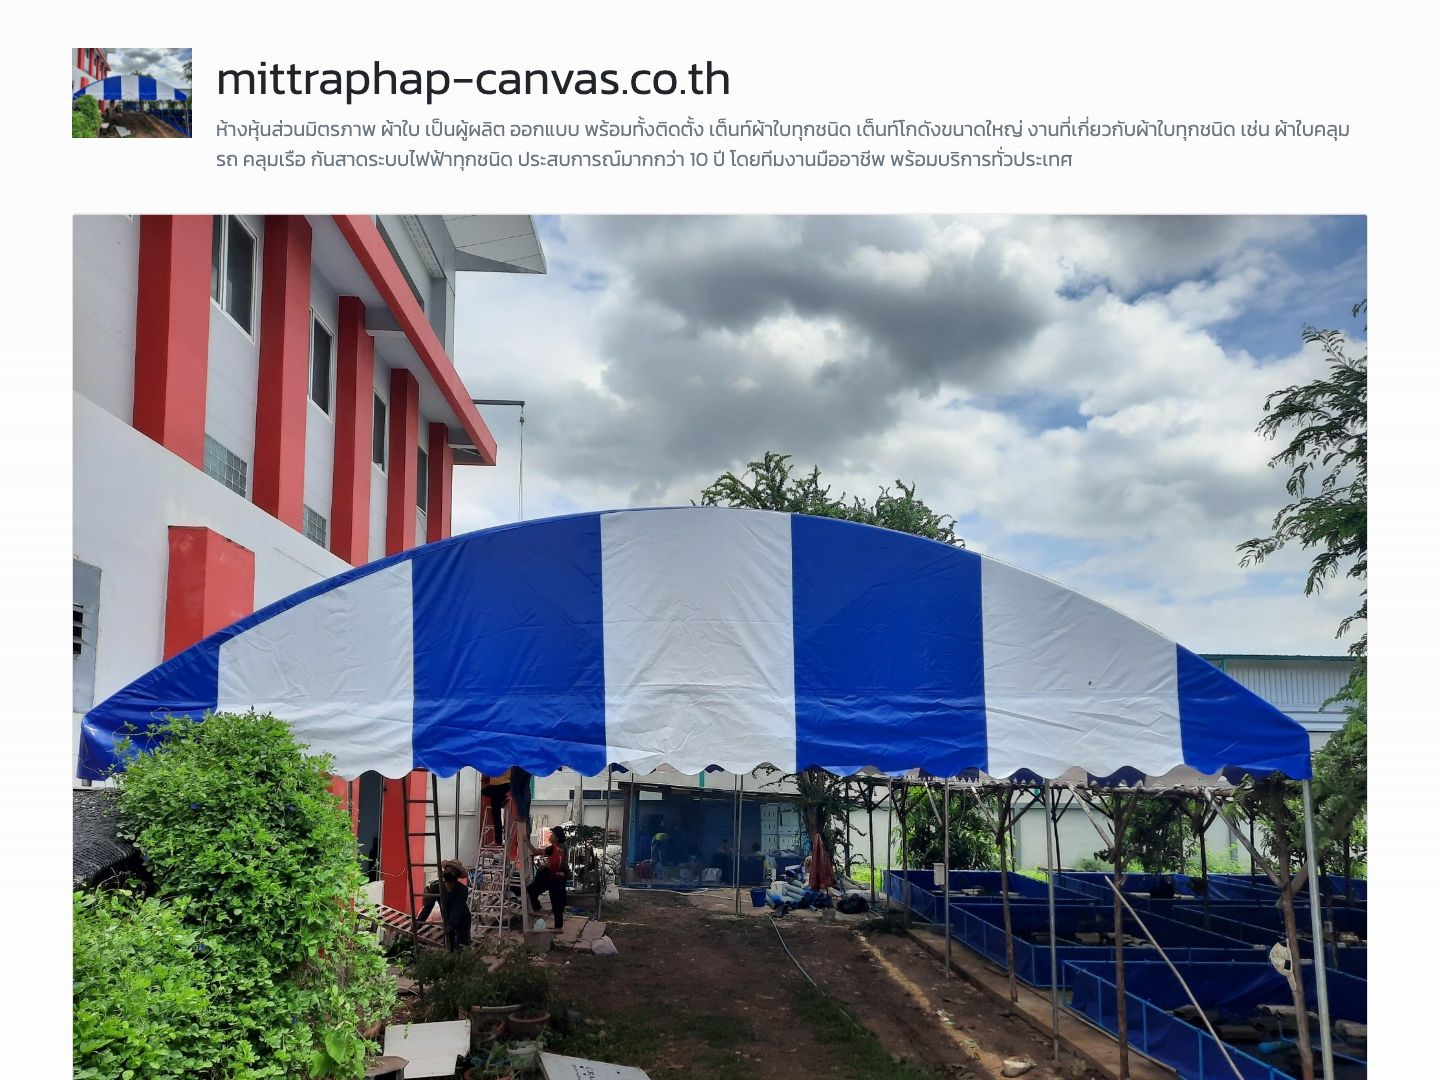 mittraphap-canvas.co.th